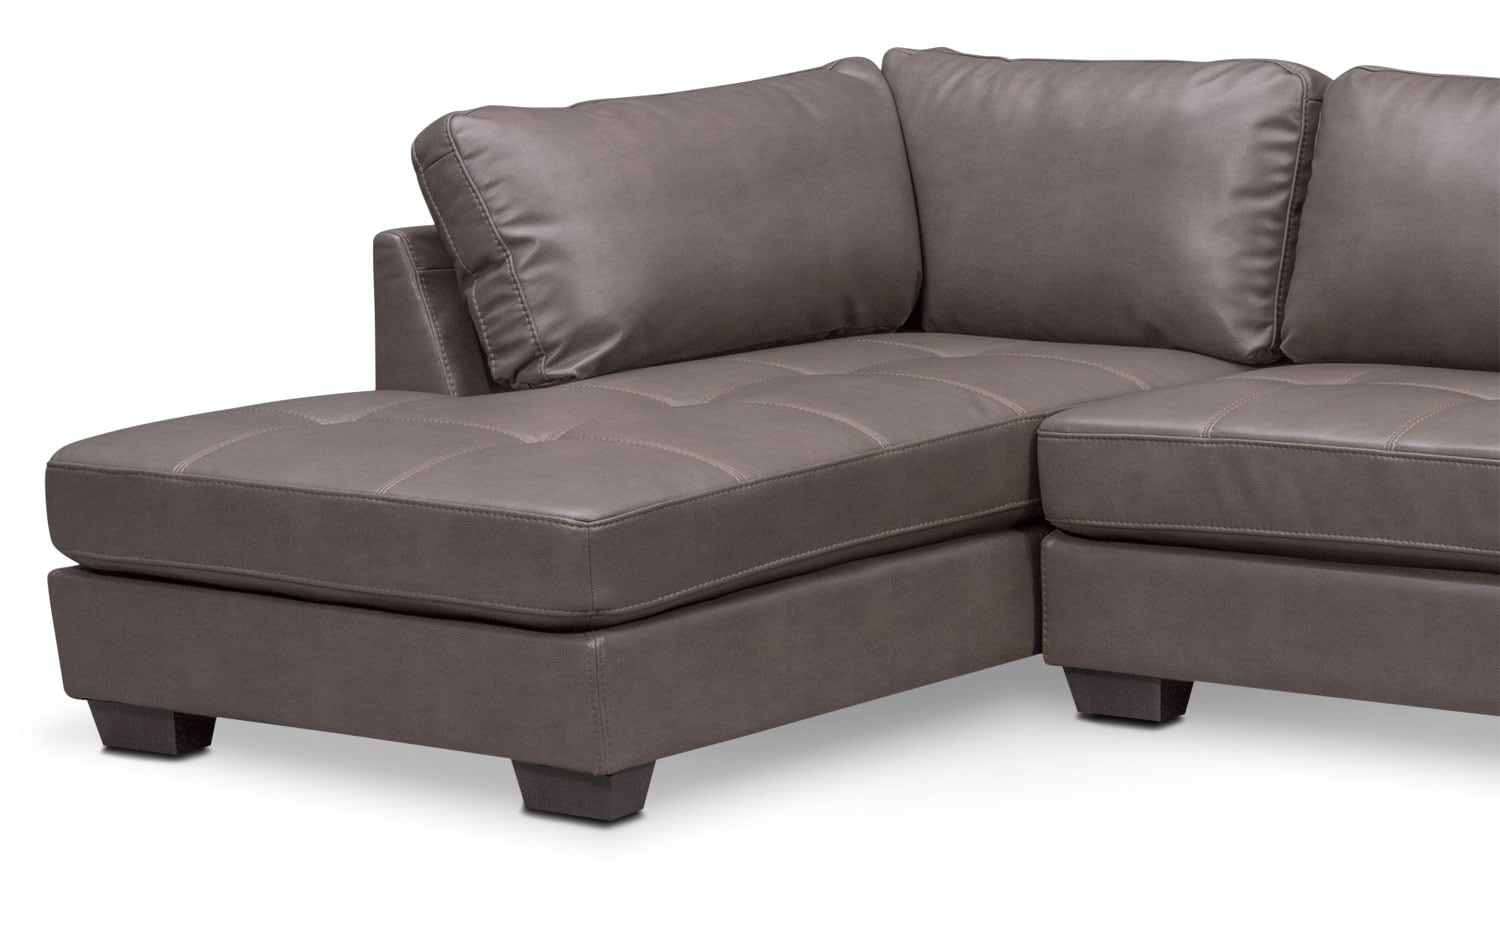 Chaise Cocktail Santana 2 Piece Sectional With Chaise And Cocktail Ottoman Set